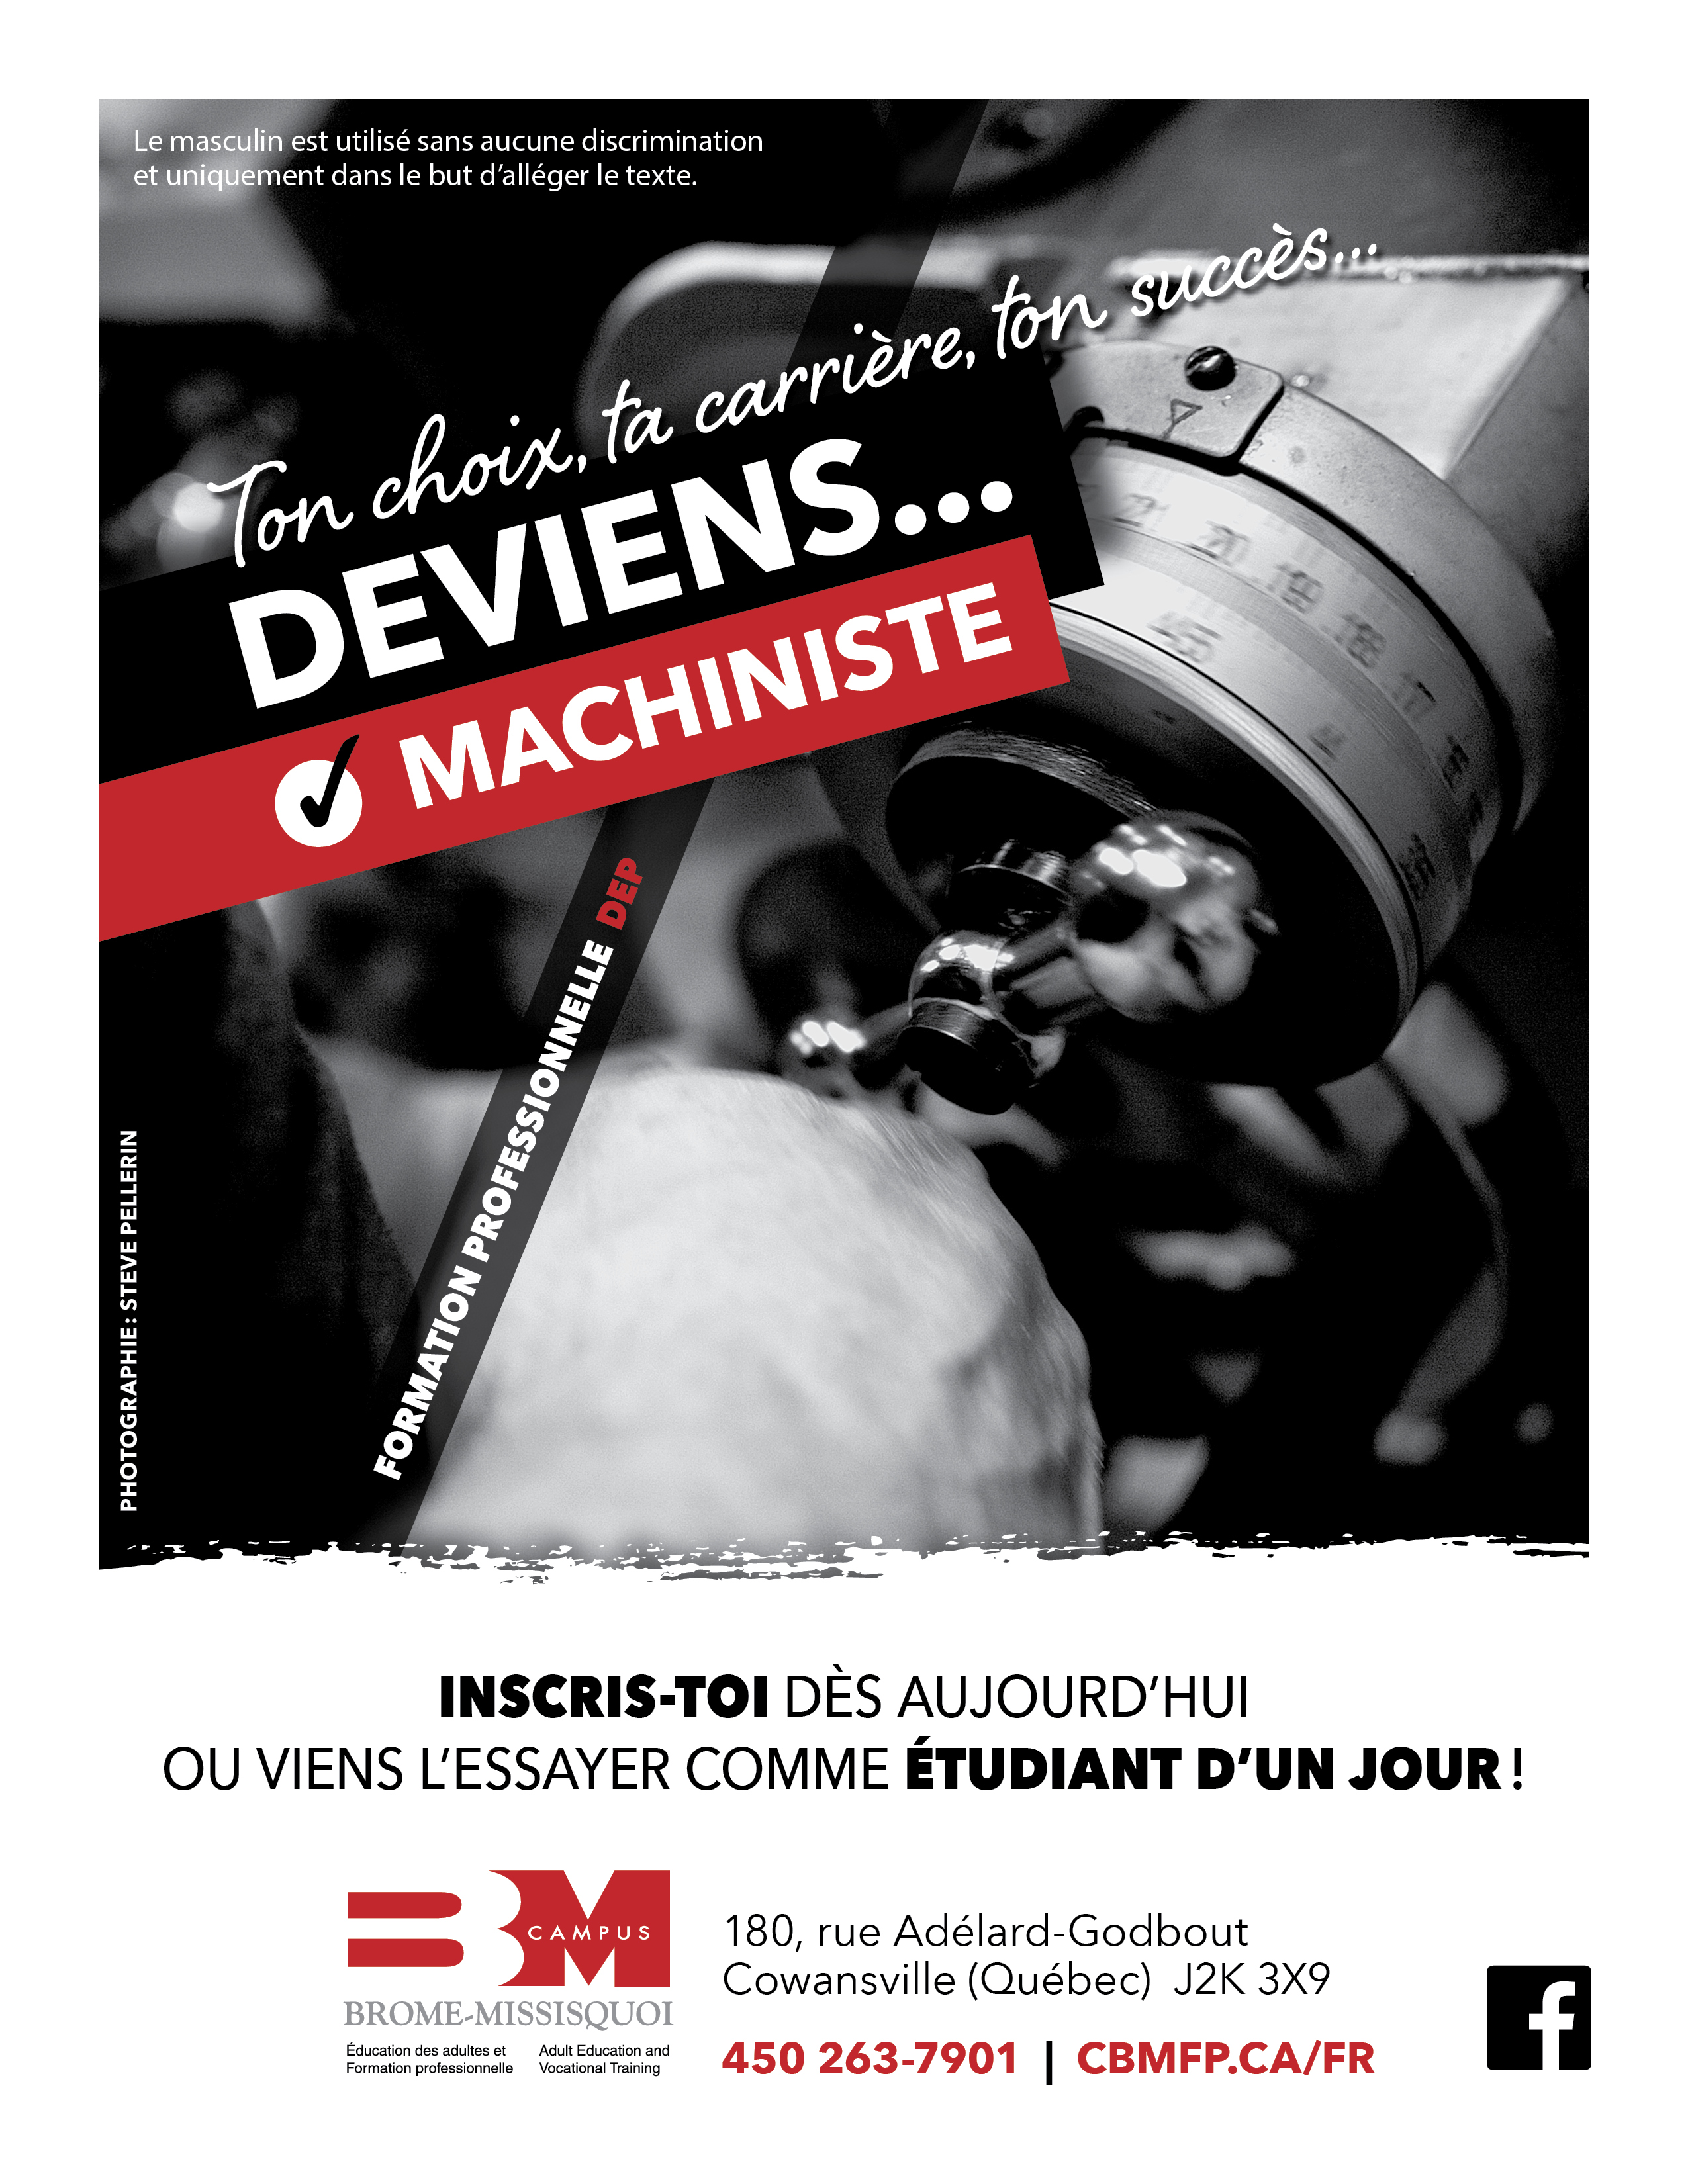 Deviens machiniste, inscris-toi!!